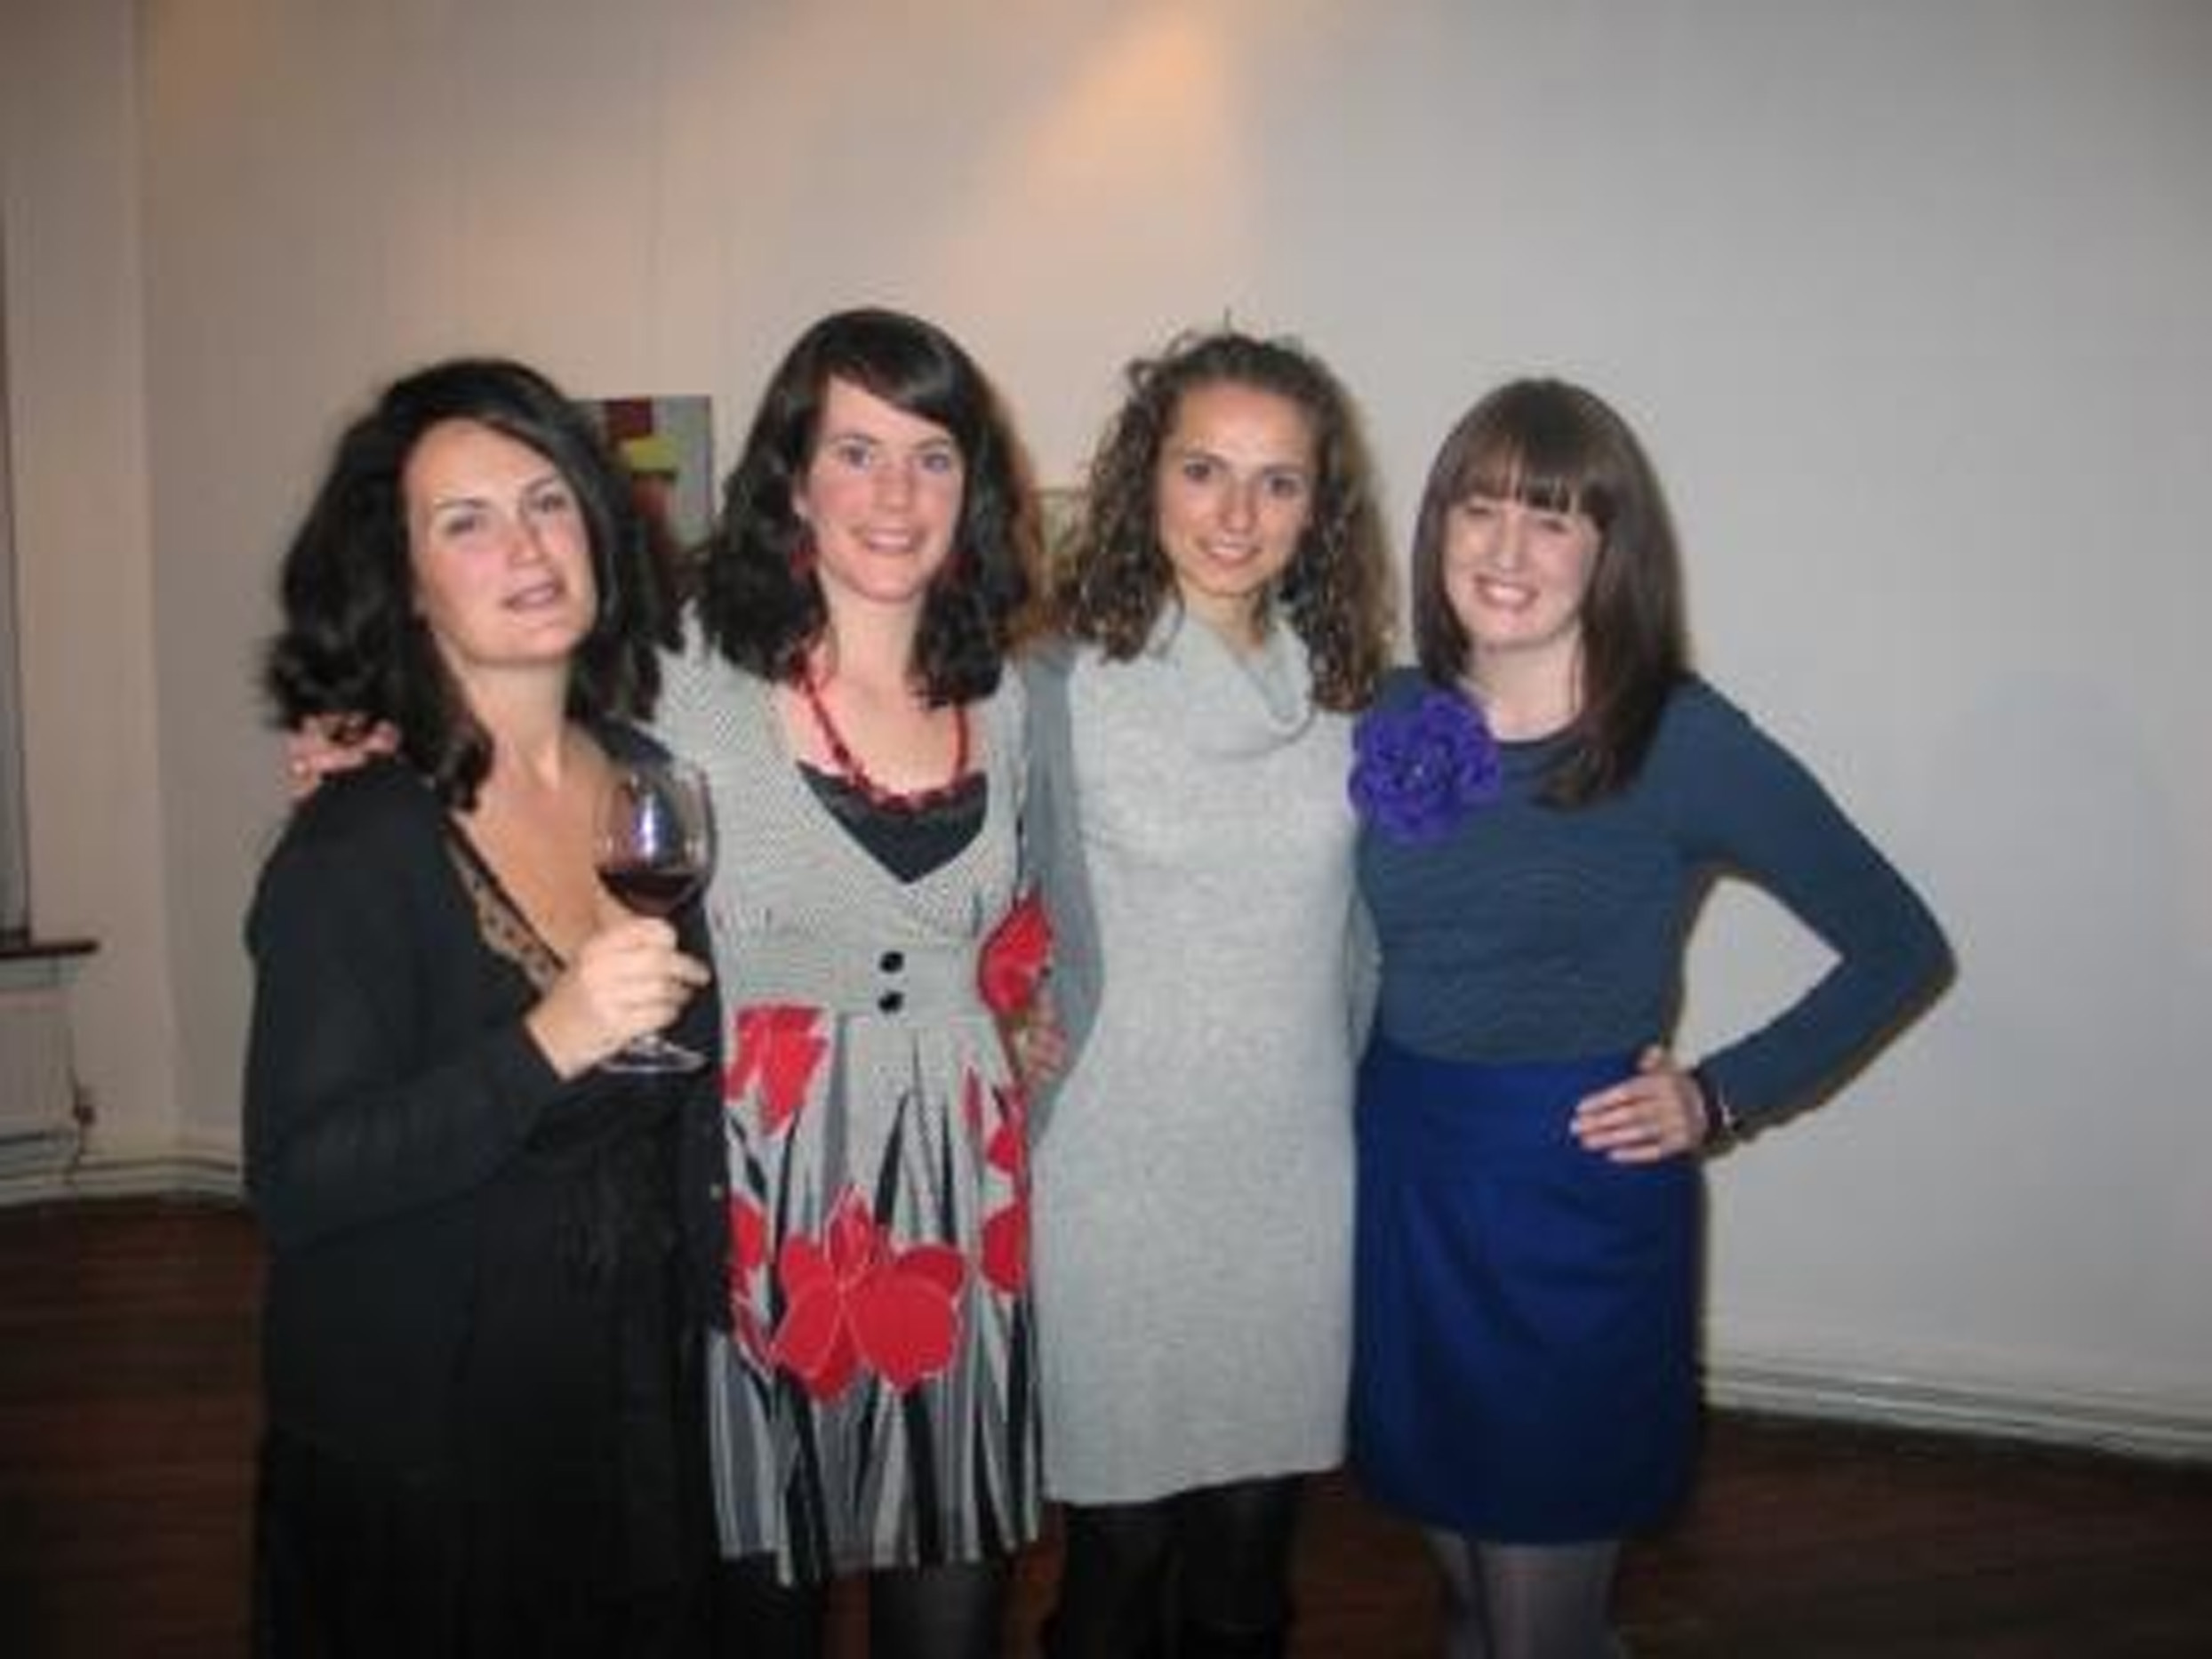 from left to right: gallery manager Elaine Grainger, assistants Róisín Russell and Lourdes Viso, artist Anne Hendrick; courtesy Talbot Gallery